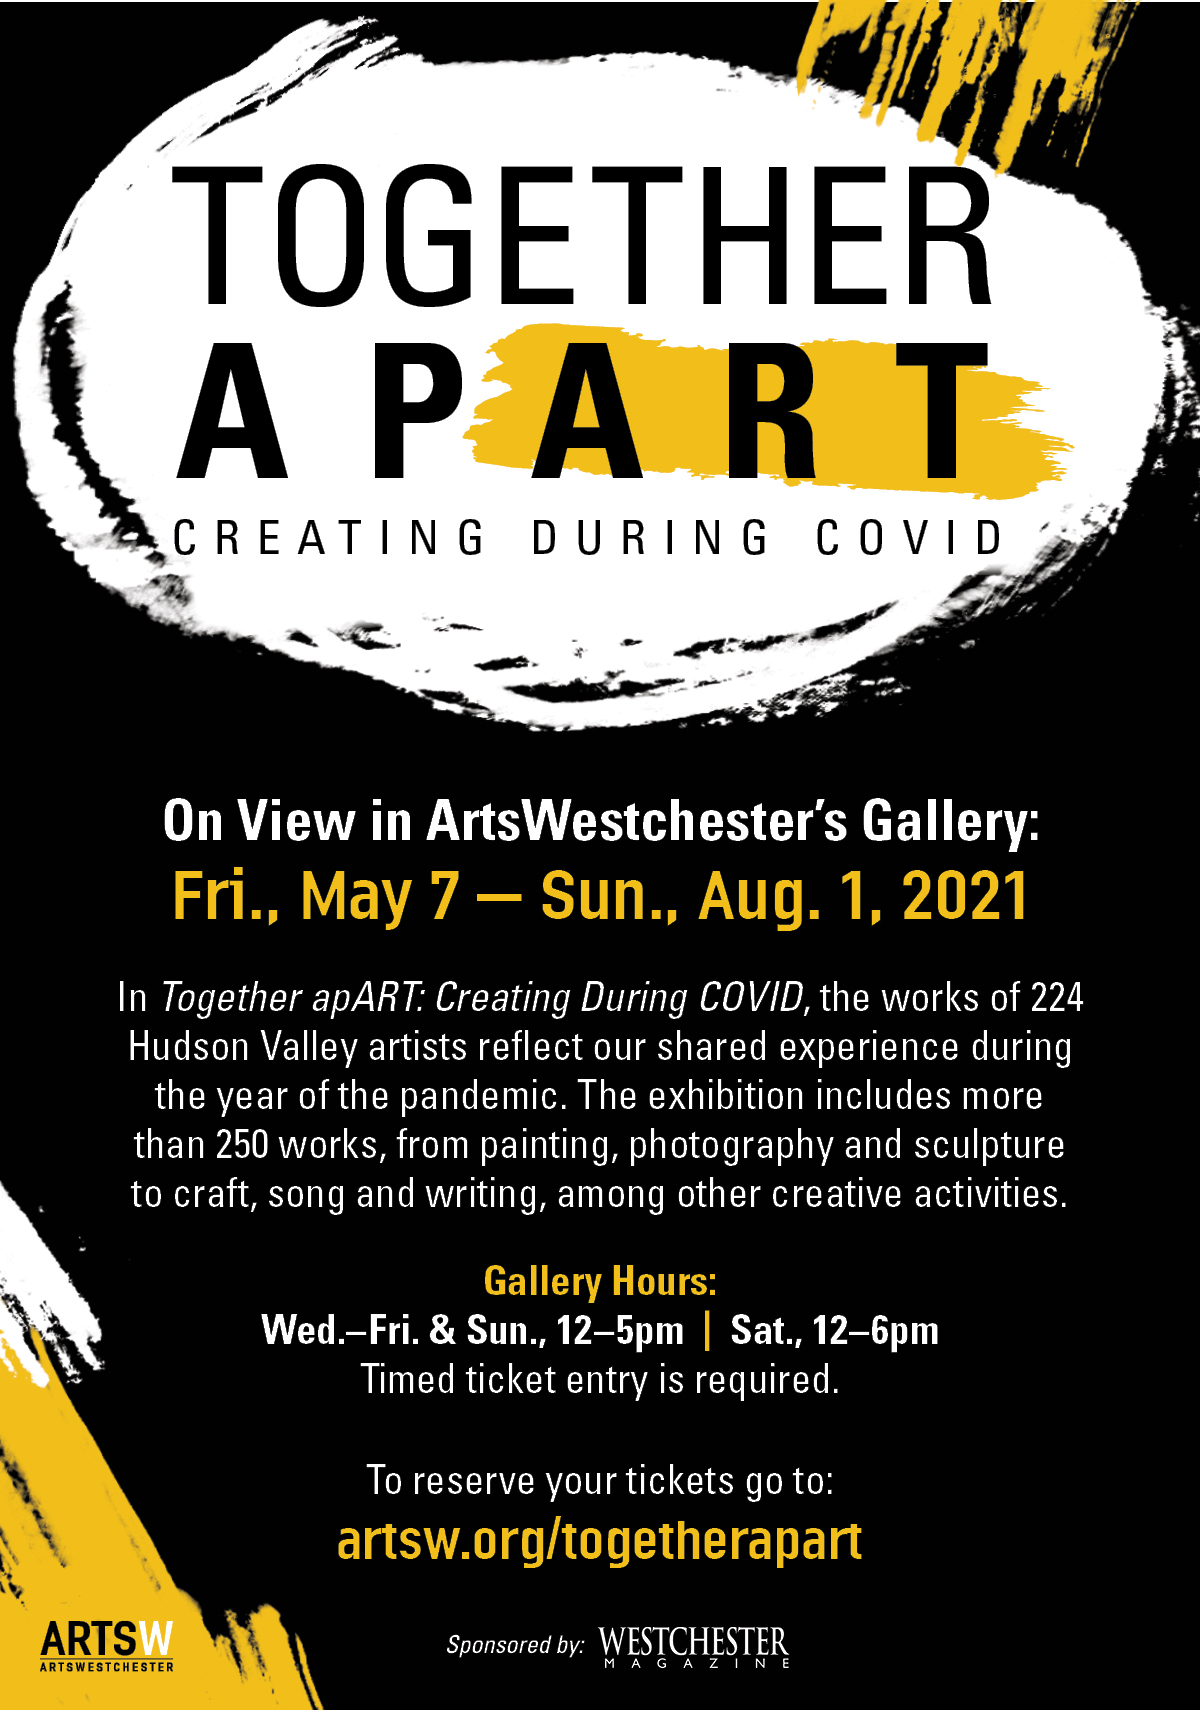 """New Arts Westchester Exhibit, """"Together apART: Creating During COVID"""" Features Works of 200+ Artists"""